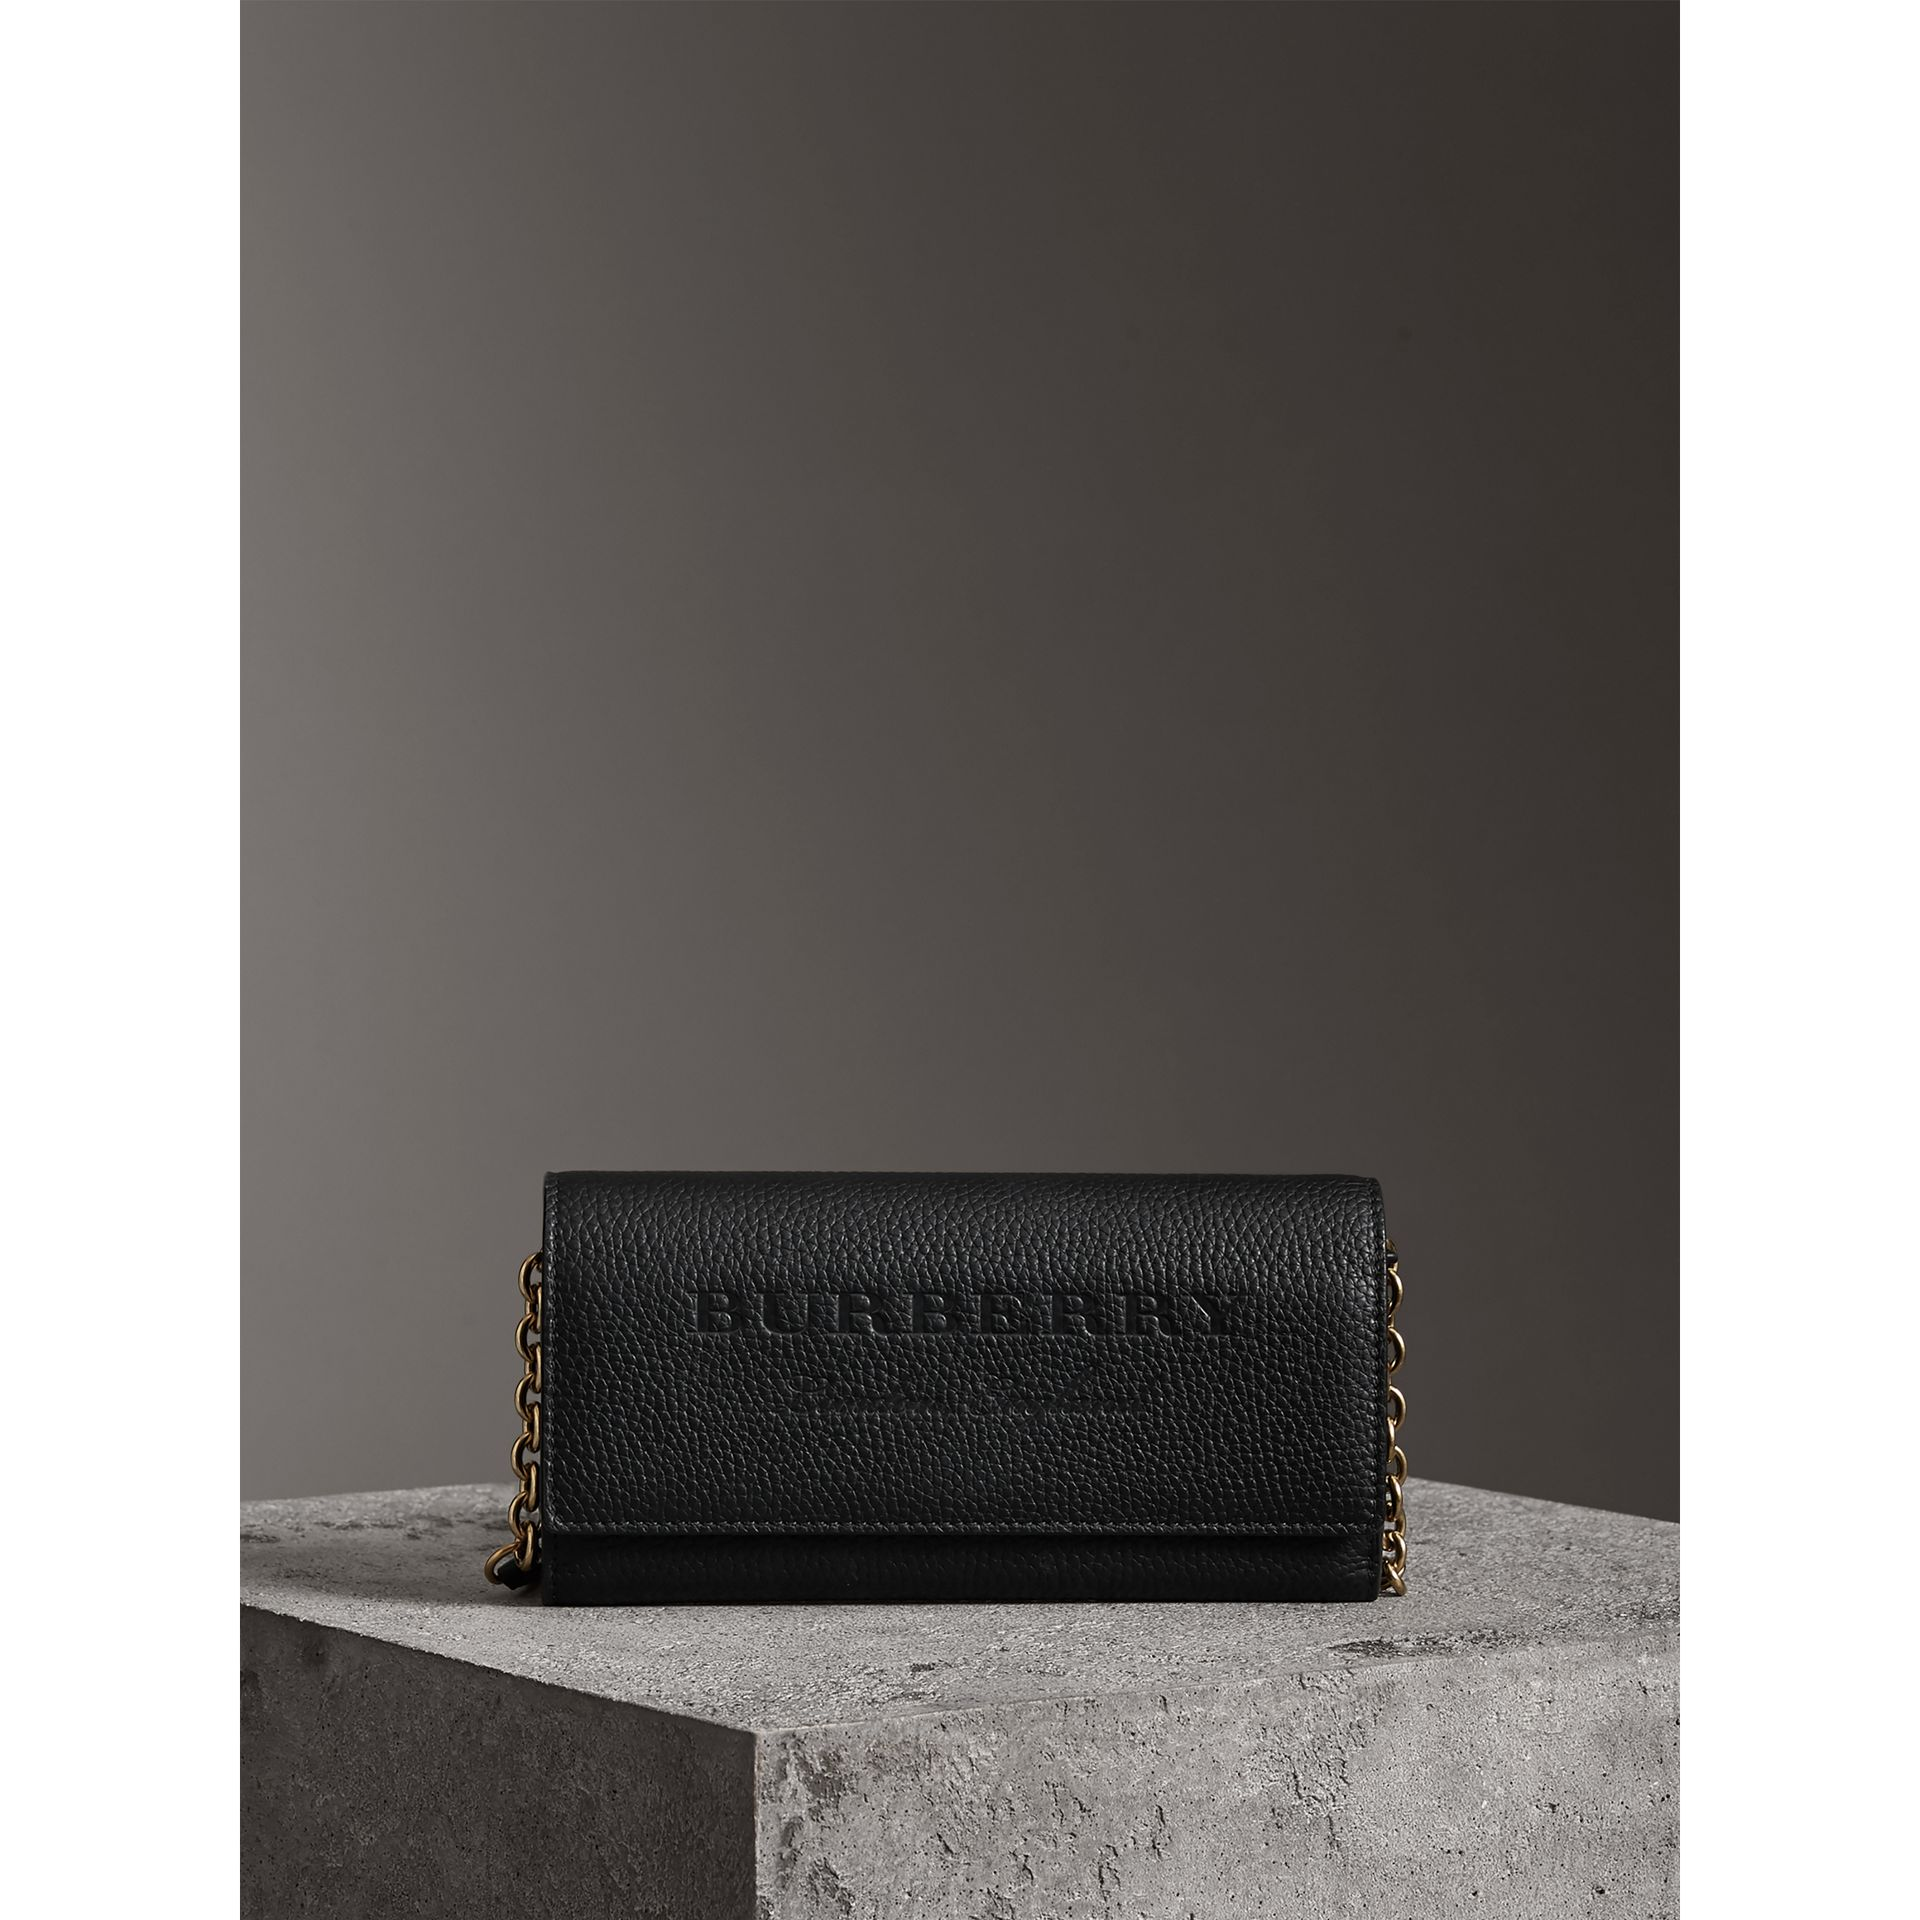 Embossed Leather Wallet with Chain in Black - Women | Burberry Australia - gallery image 6